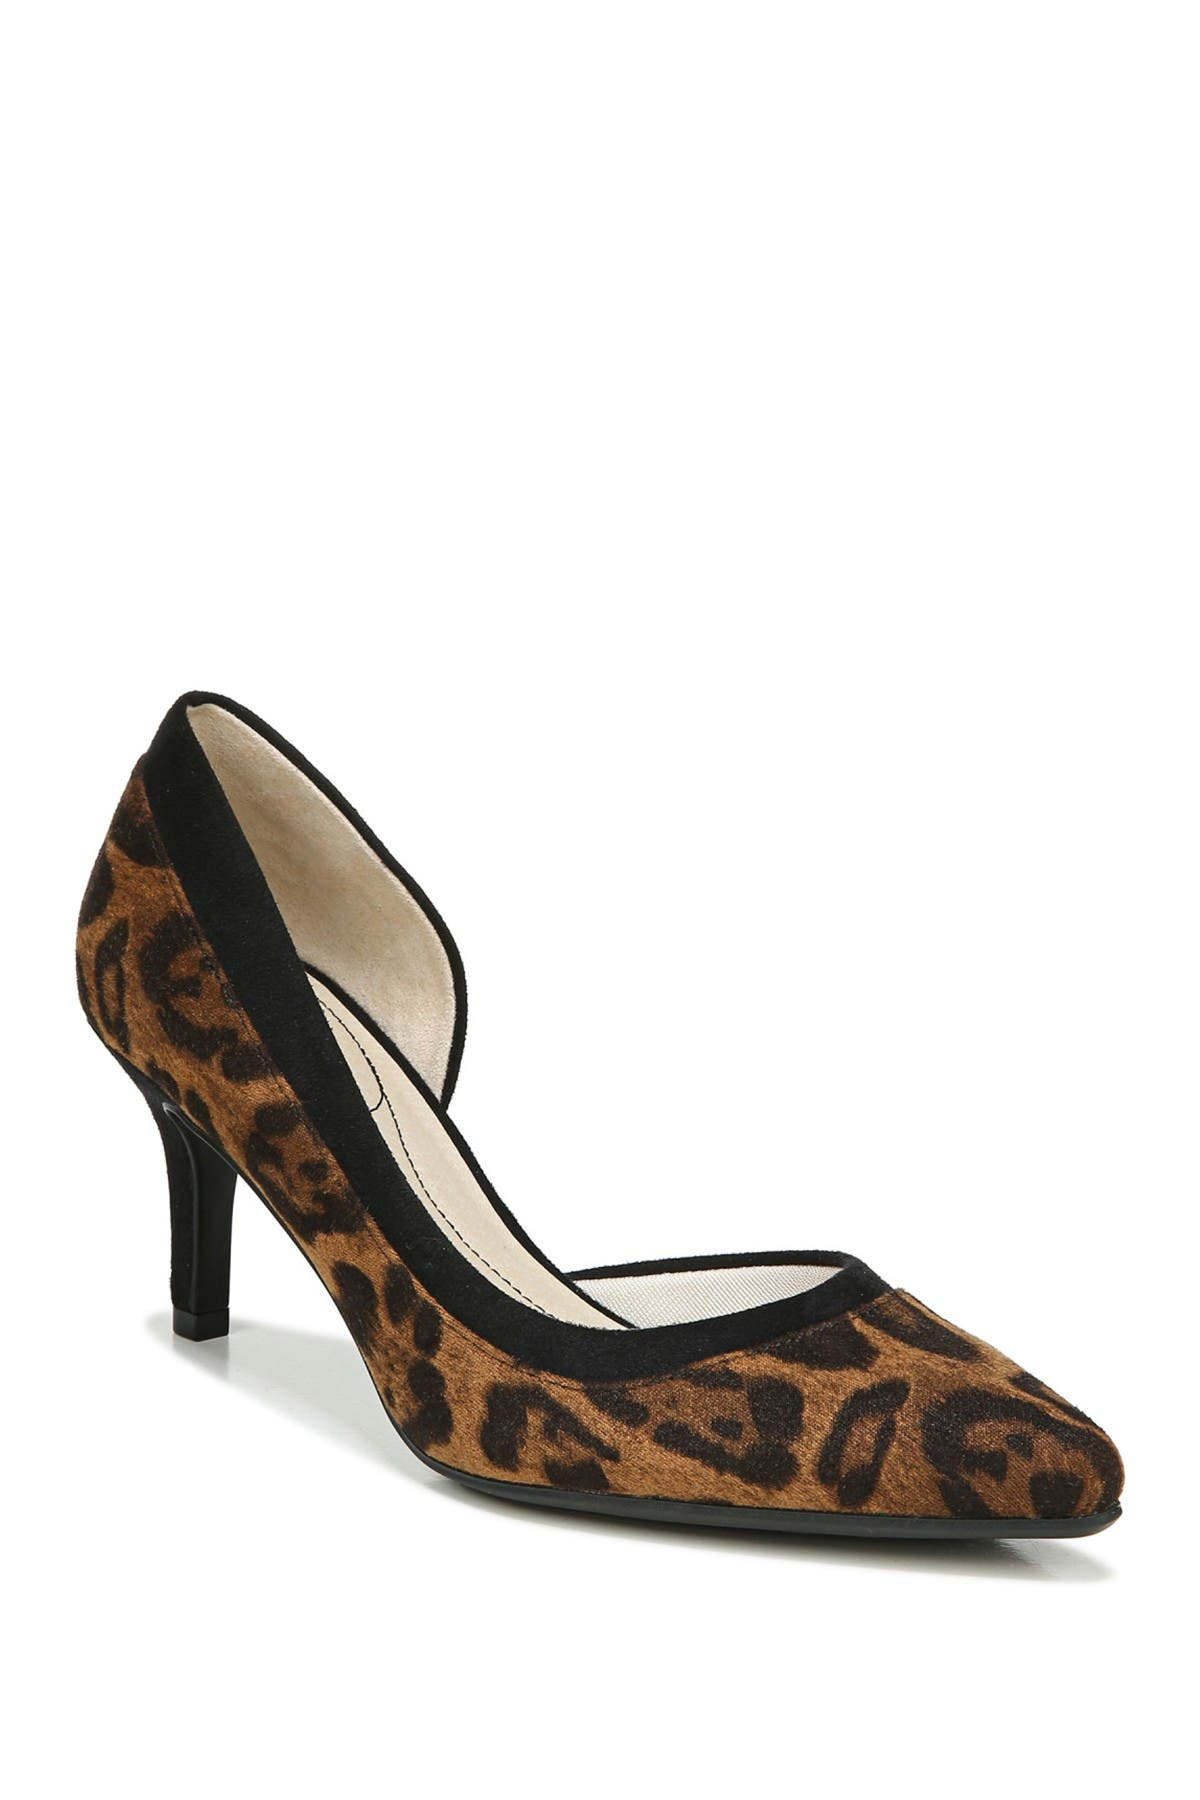 Image of LifeStride Swann Leopard Print d'Orsay Pump - Wide Width Available